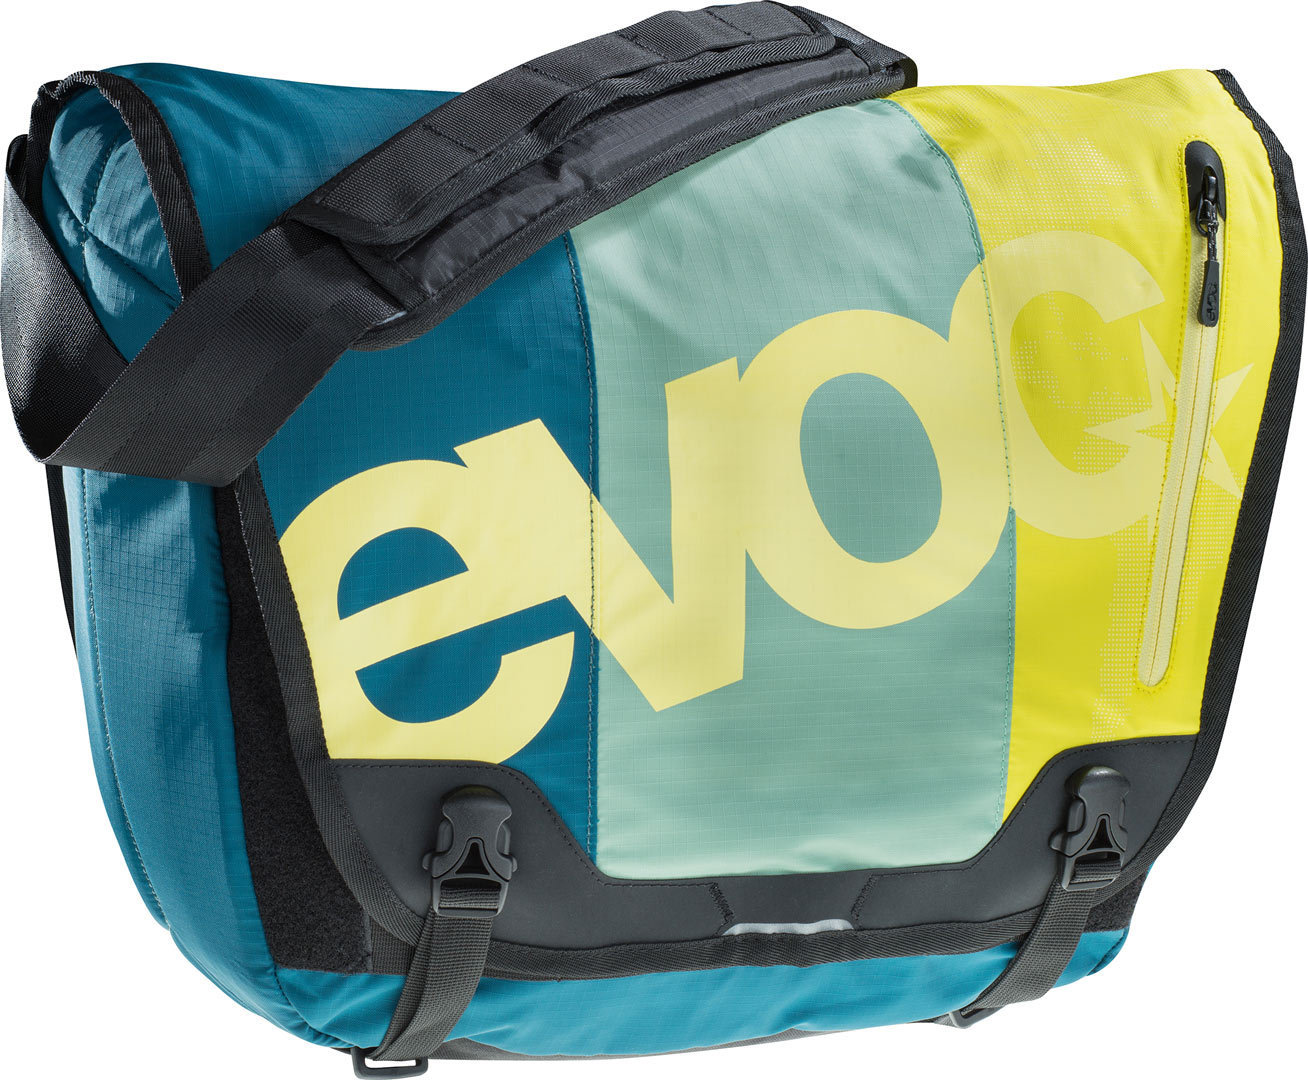 evoc-messenger-20l-2017-bag-colorful-one-size